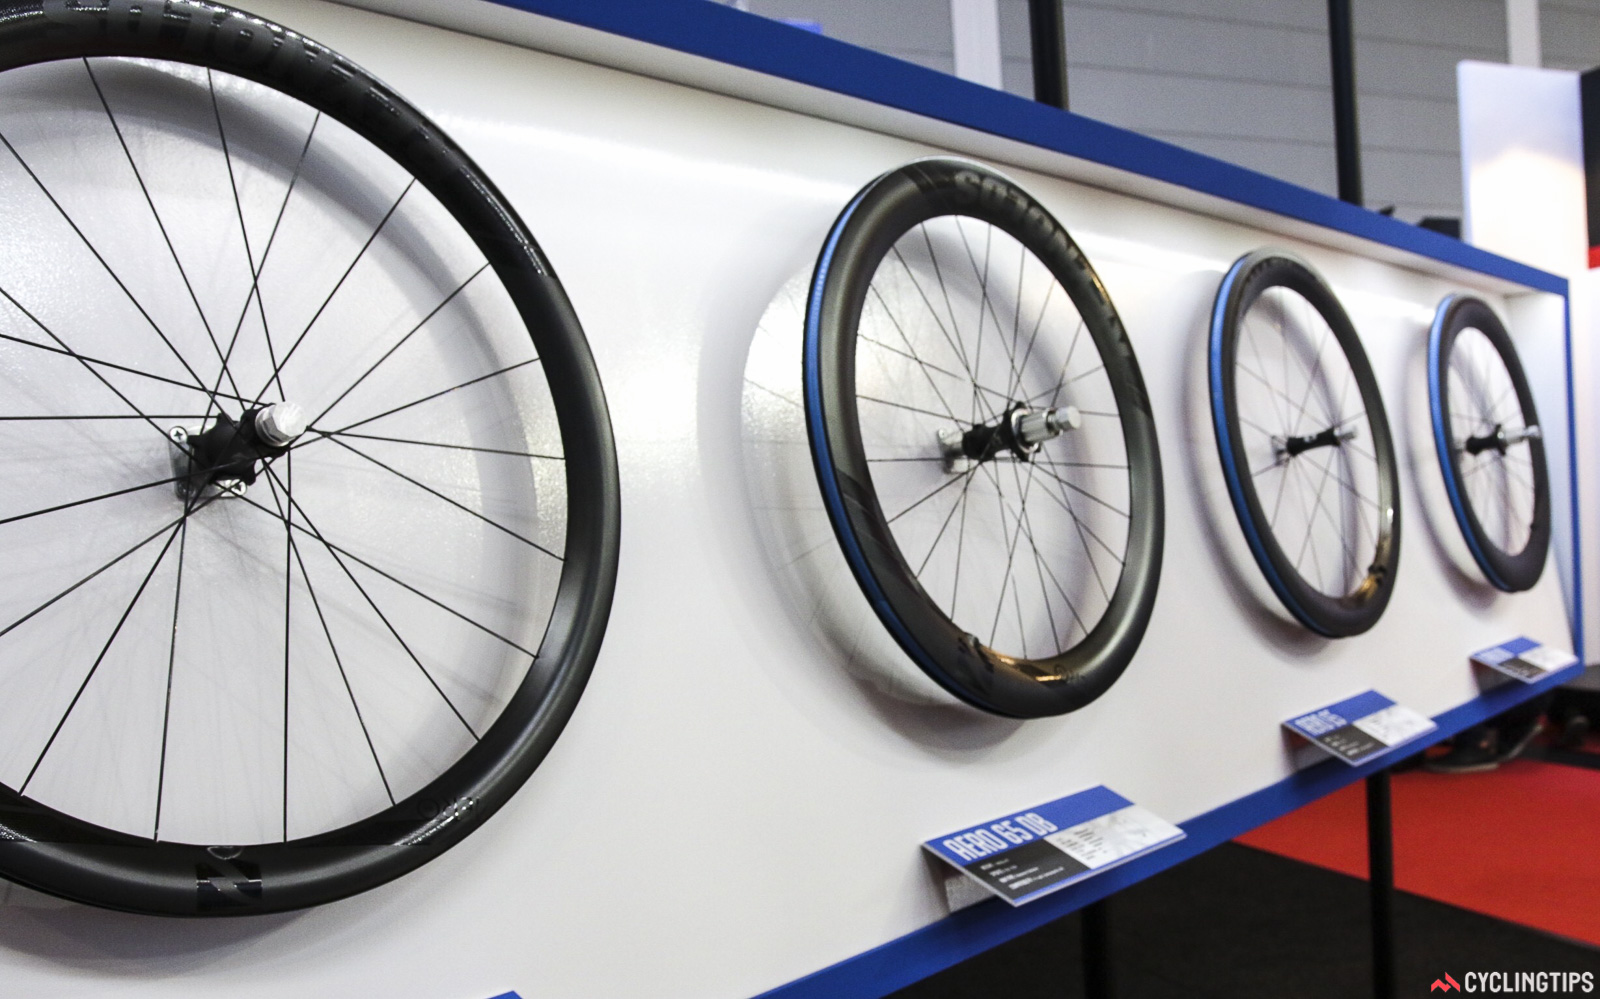 Reynolds has updated its aero profile for 2017, claiming the new 28mm width design saves 3-4W compared to the previous iterations (conditions tested unknown). All the rims are tubeless-ready and with a 19mm internal width. The wheels are rolling on US-Made Industry Nine hubs with a fast 6-degree freehub pickup. The 46mm depth is Disc only. The 65 is available in both rim and disc. While the deep 80 is rim brake only. Plenty of work has gone into that rim brake surface too. All options should be available by January. Photo: David Rome.